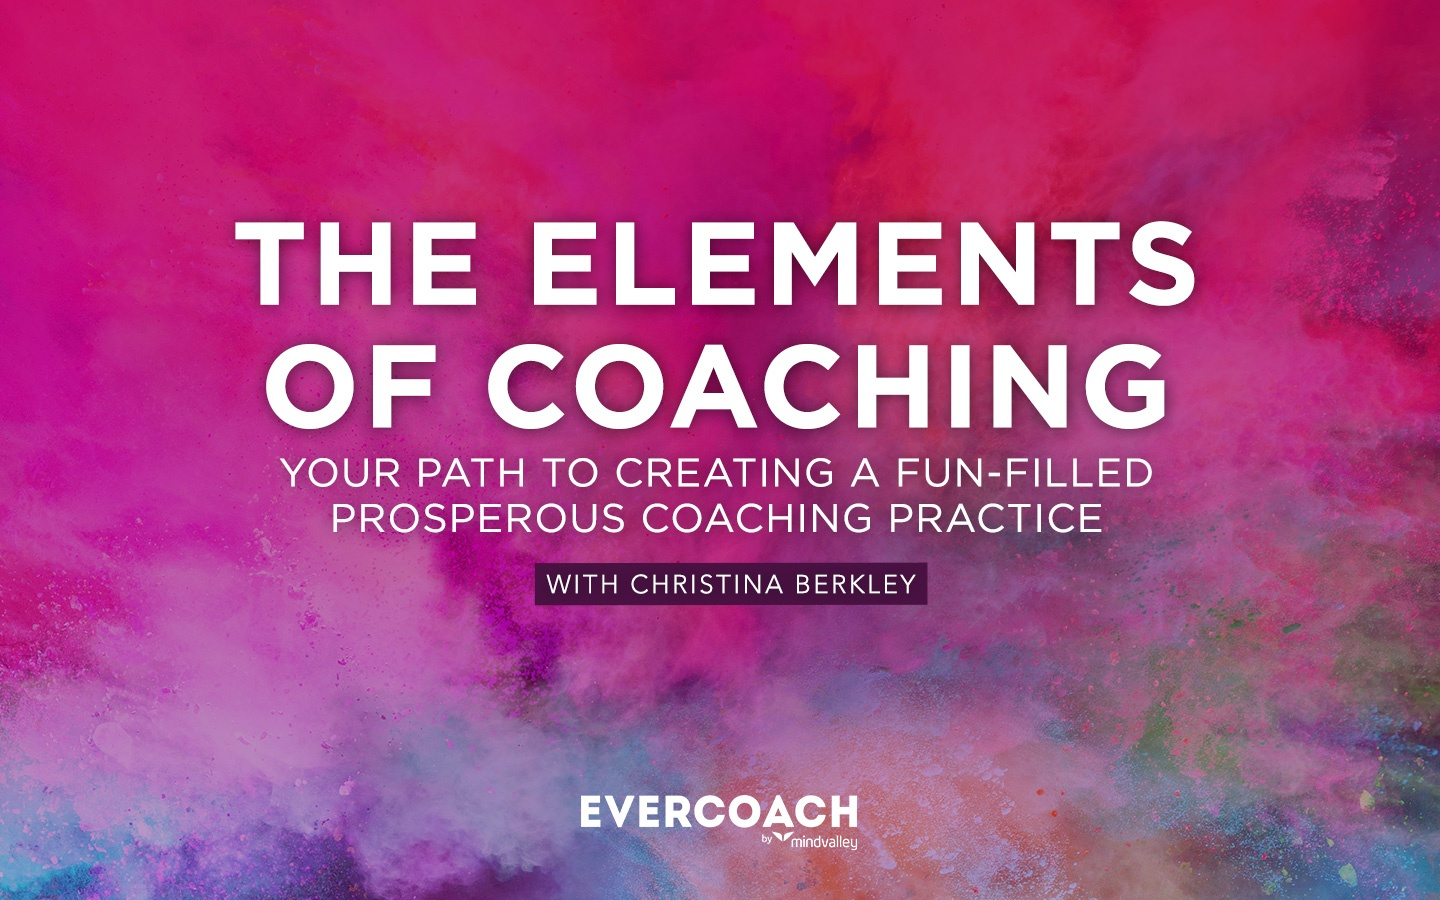 The Elements of Coaching